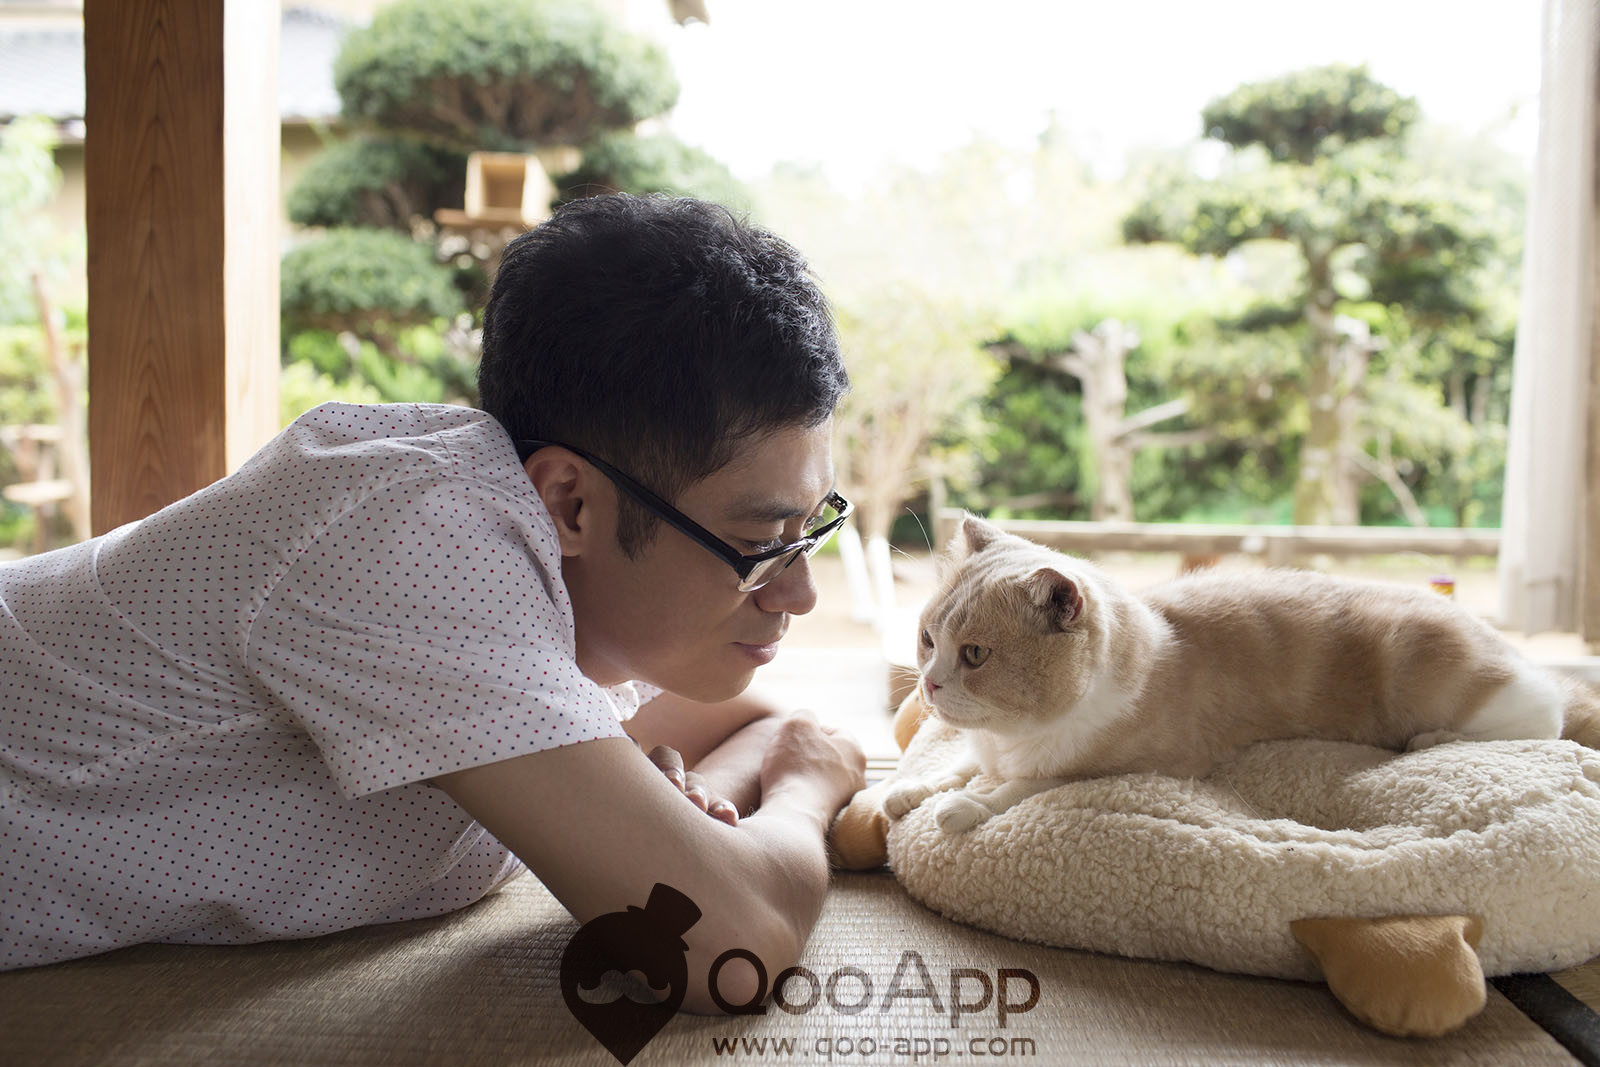 Mobile game Neko Atsume's live action movie released in 2017